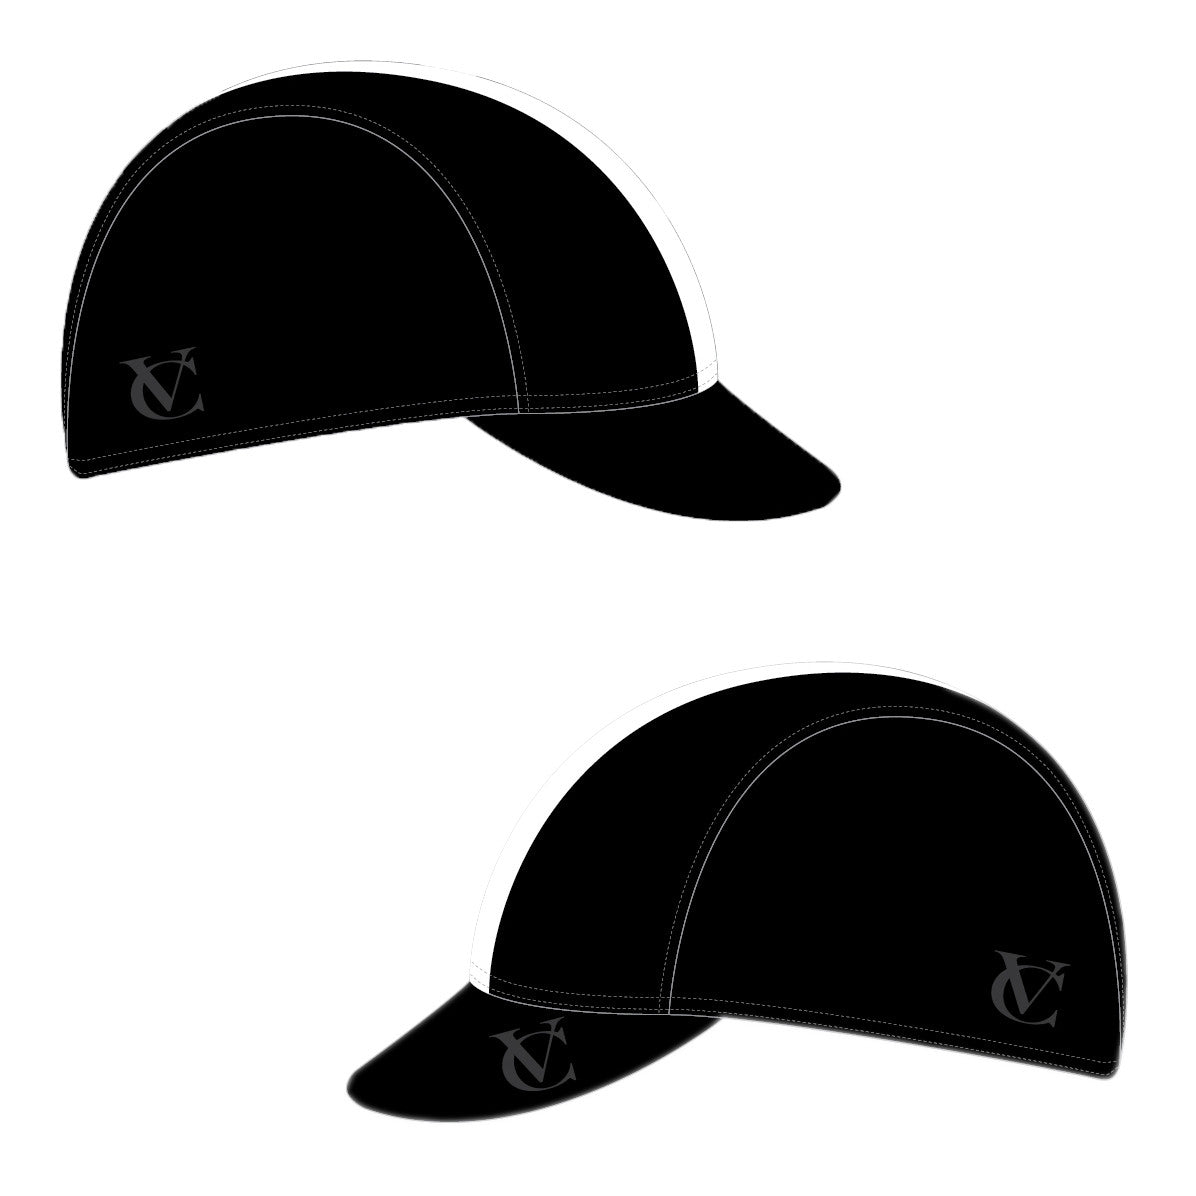 VELOCHAMPION Cycling Tech Cap - Black with White Band - Velochampion